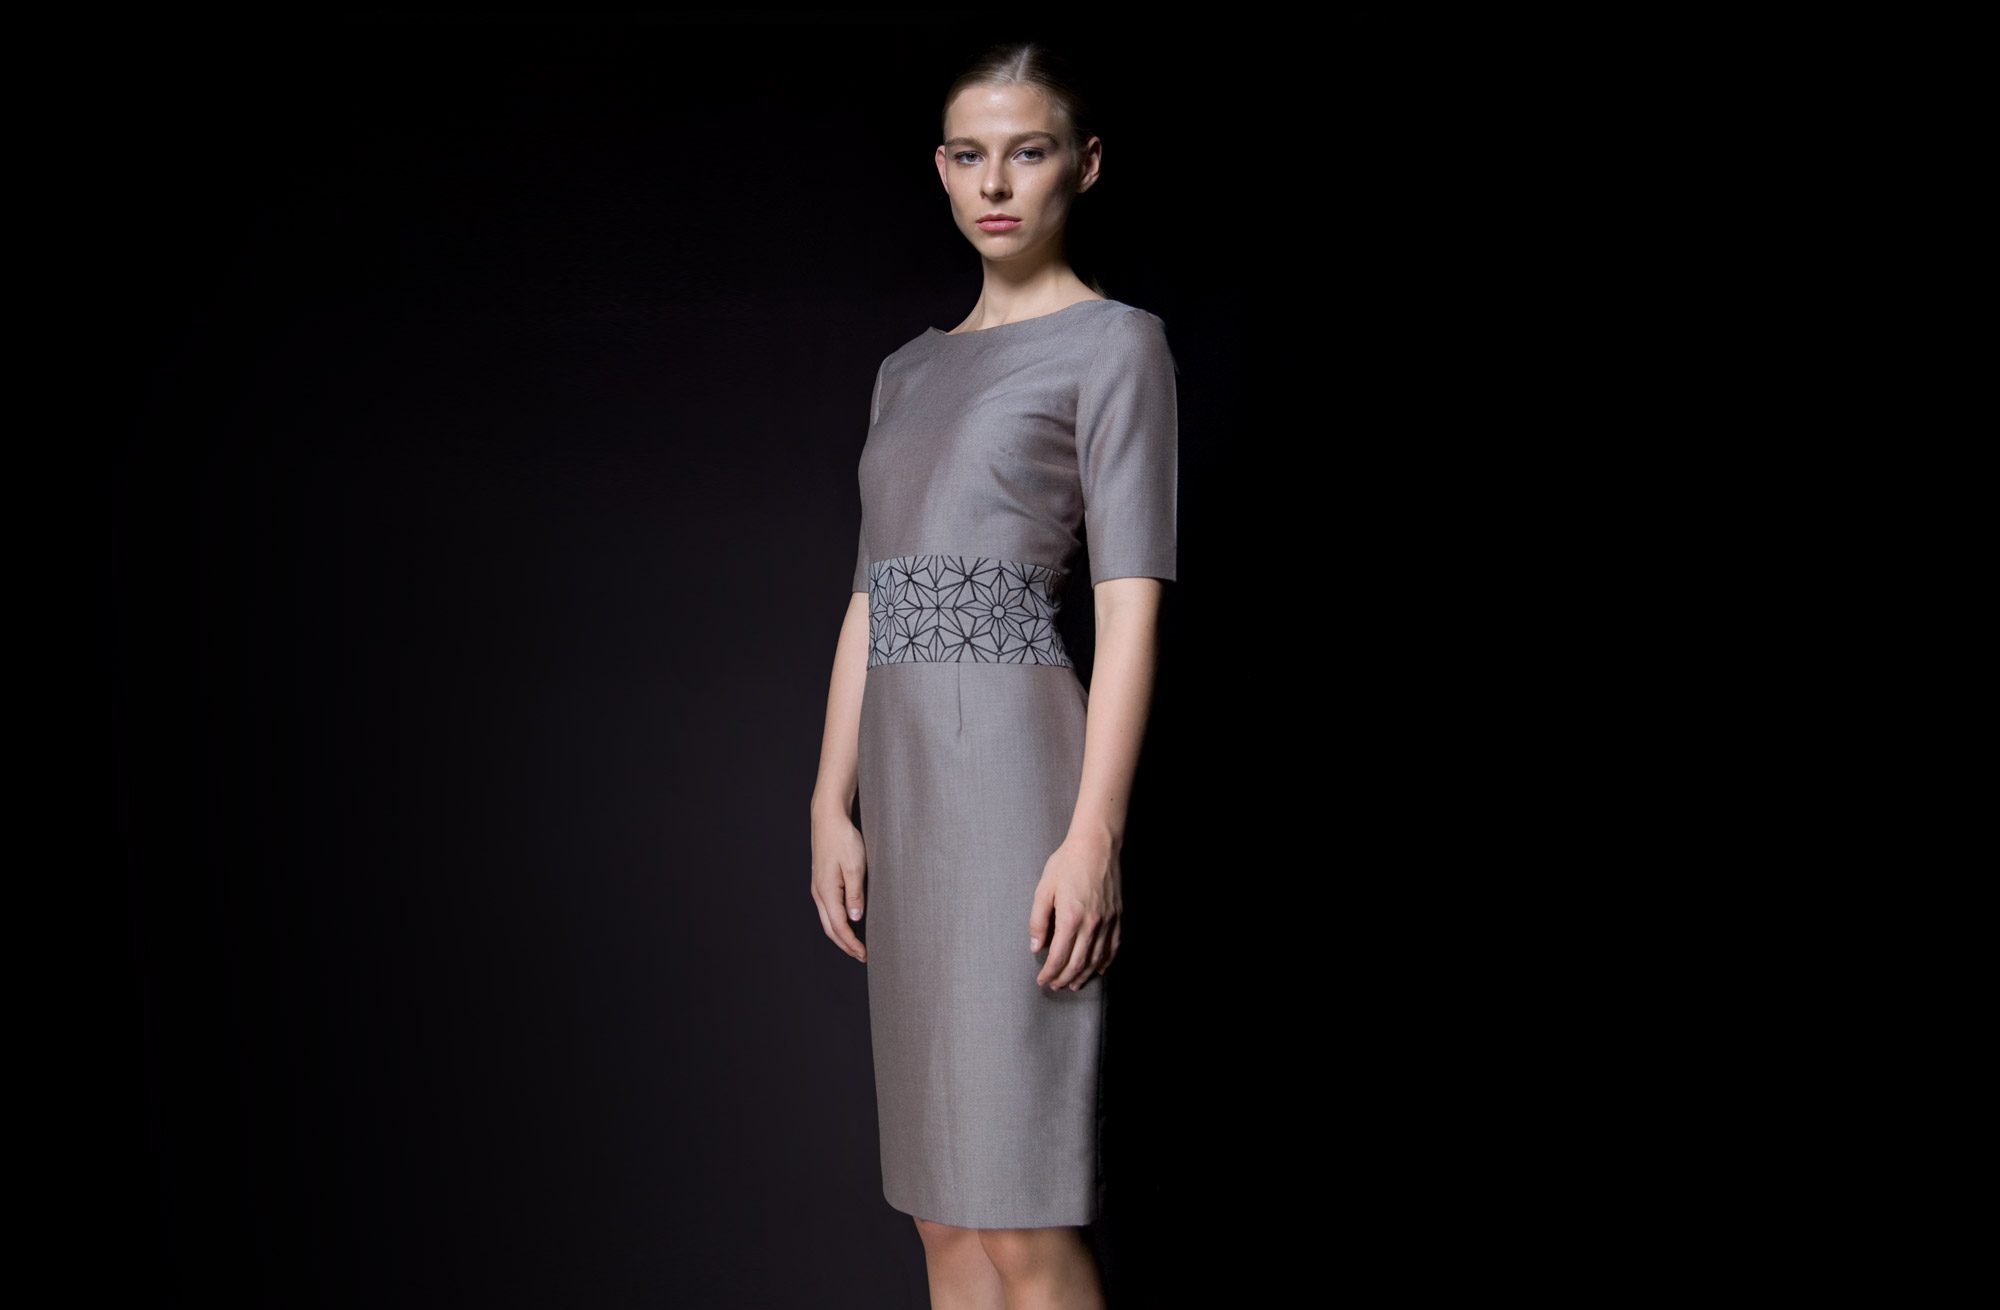 Reception Manager Female Dress